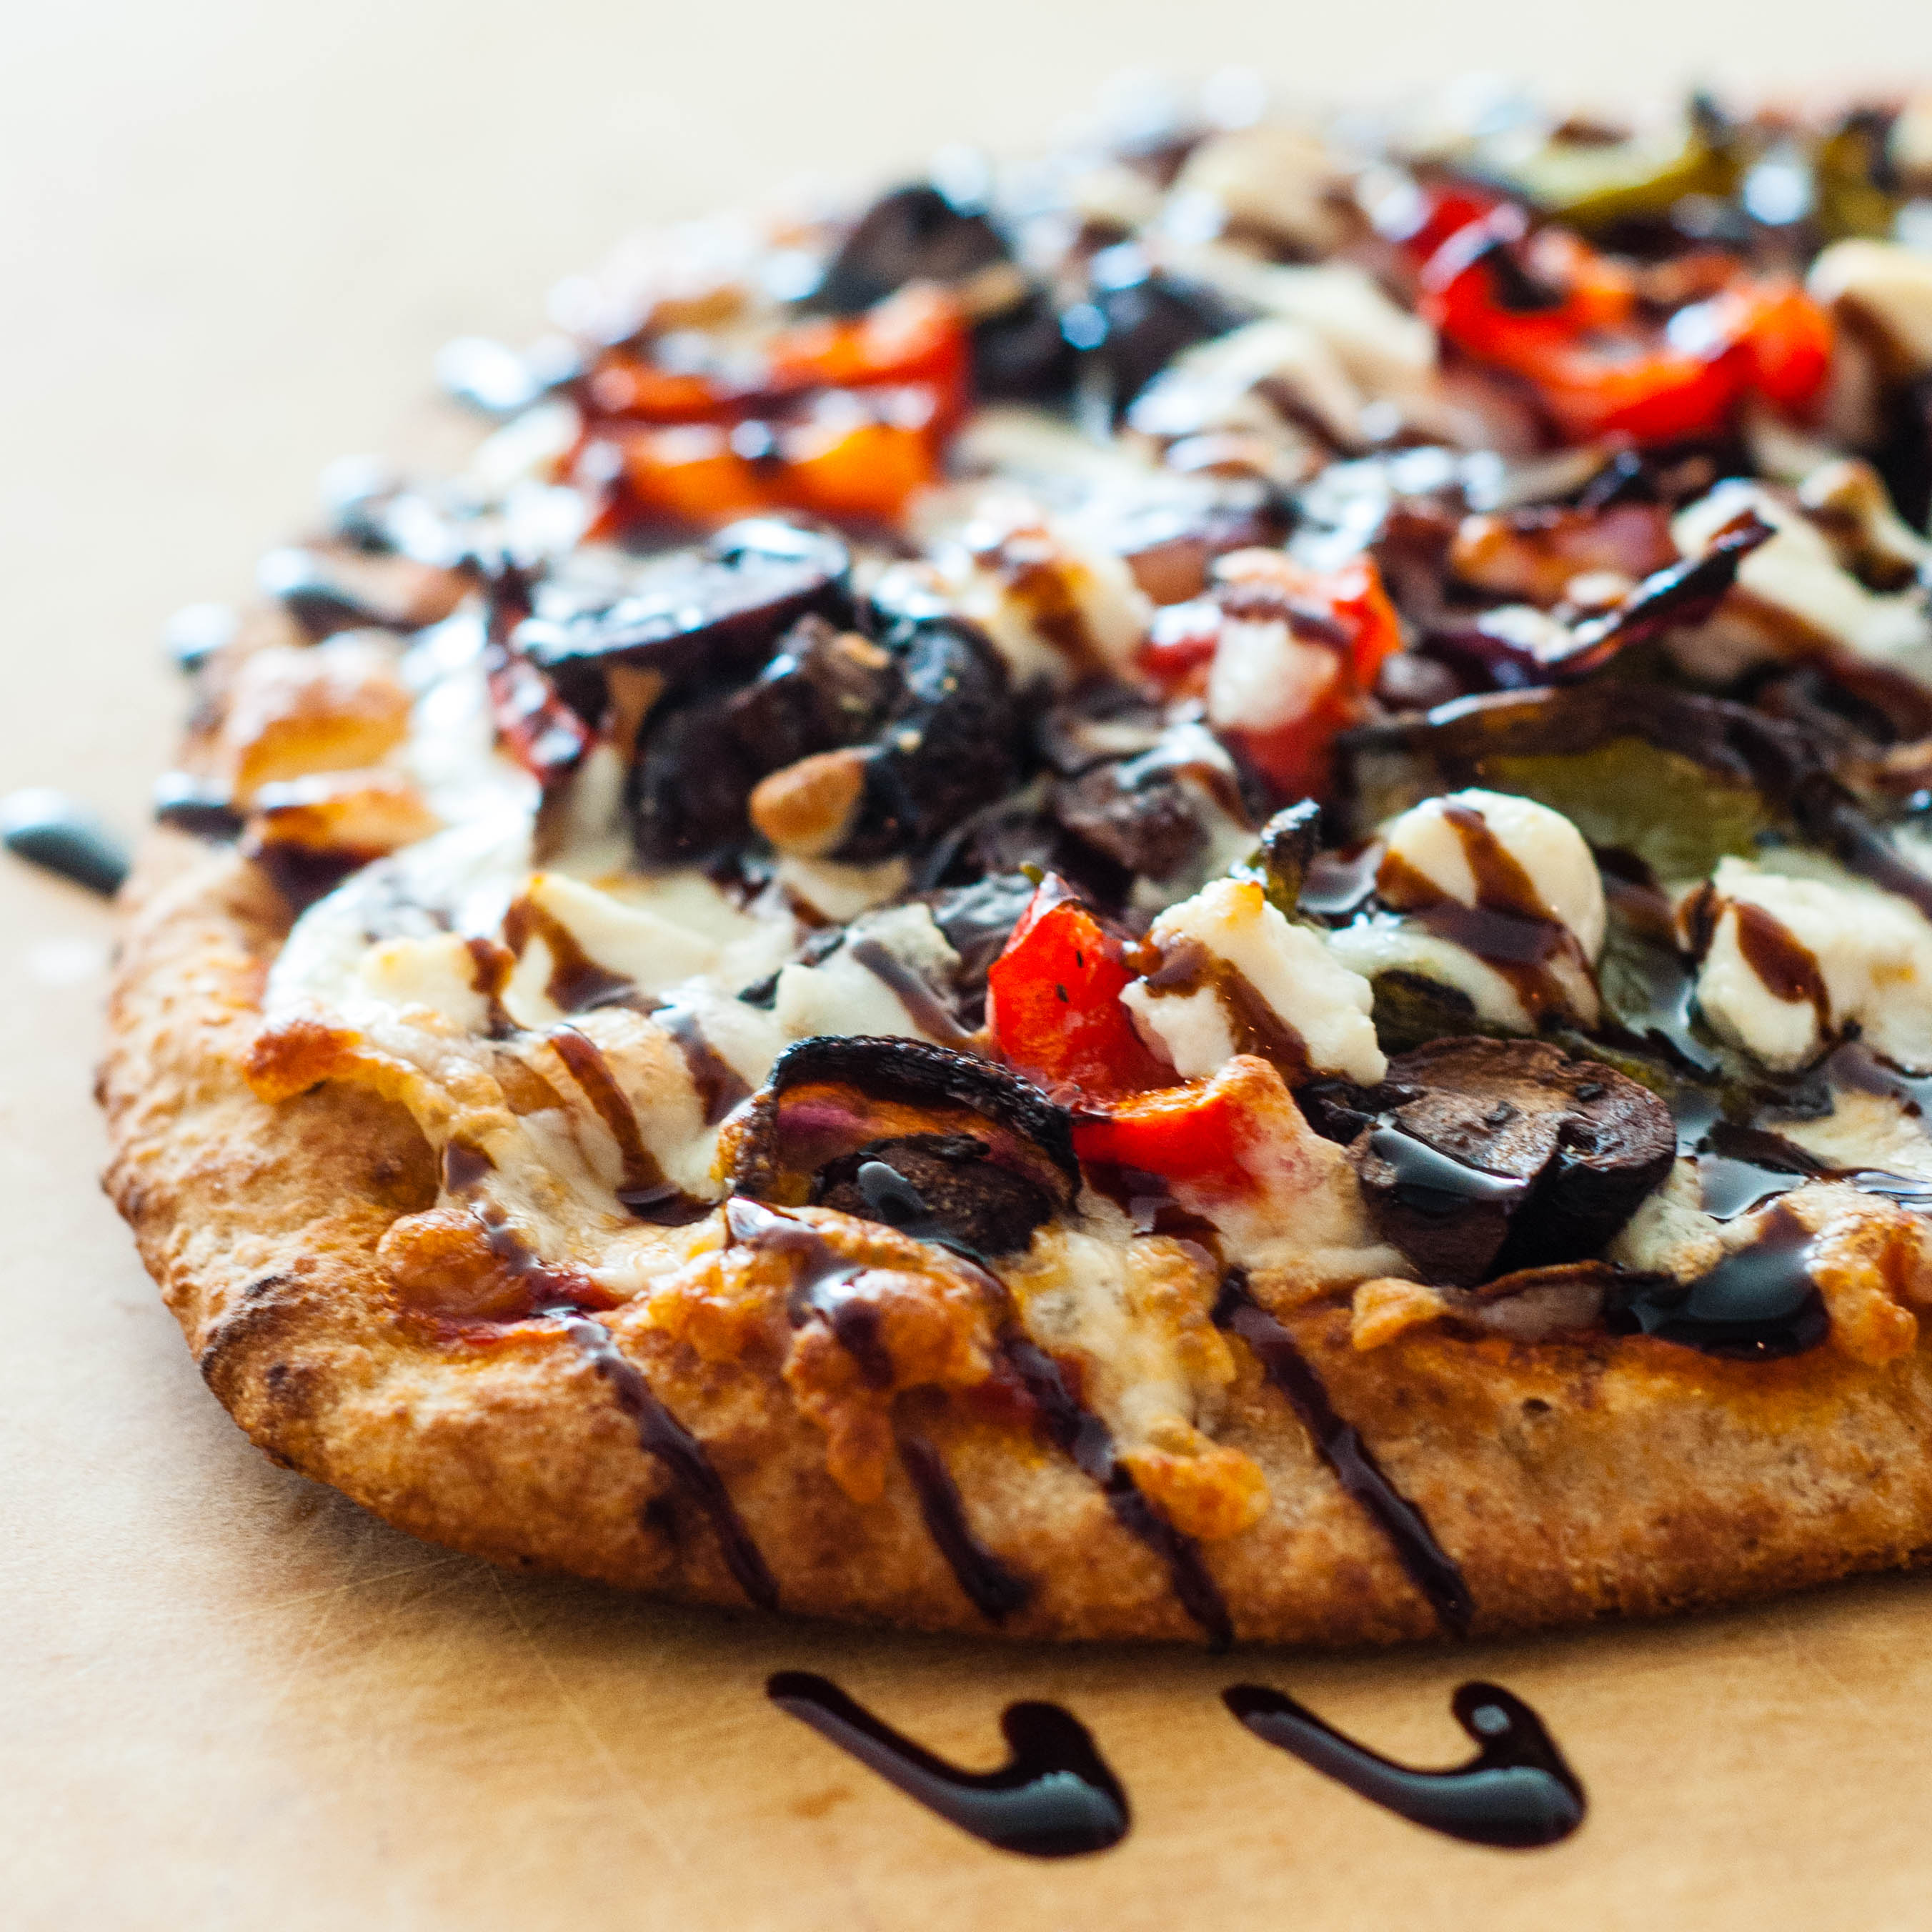 Roasted vegetable naan pizzas